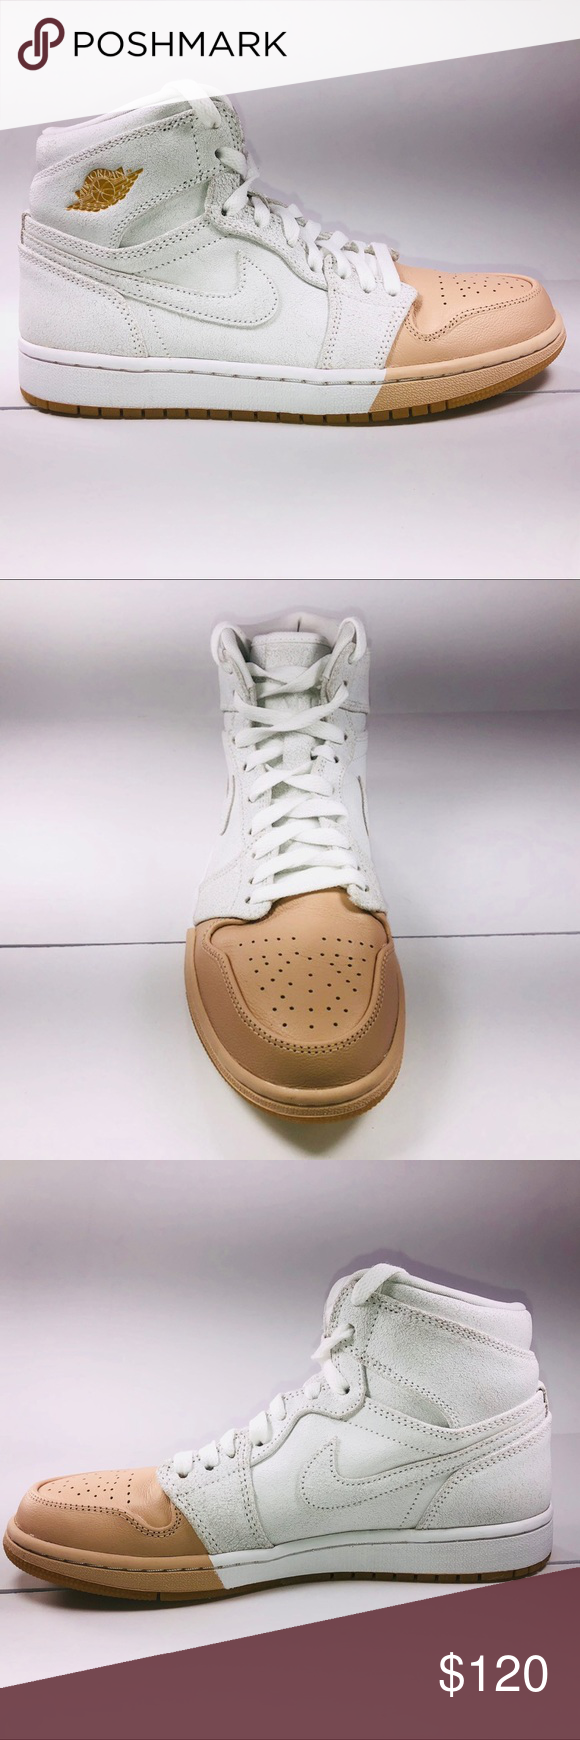 Air Jordan Retro 1 Premium Tan Toe Basketball Shoe New With Damaged Box  Missing Lid See Pictures For Details. Womens Air Jordan Retro 1 Premium Tan  Toe ... 18a60029c0